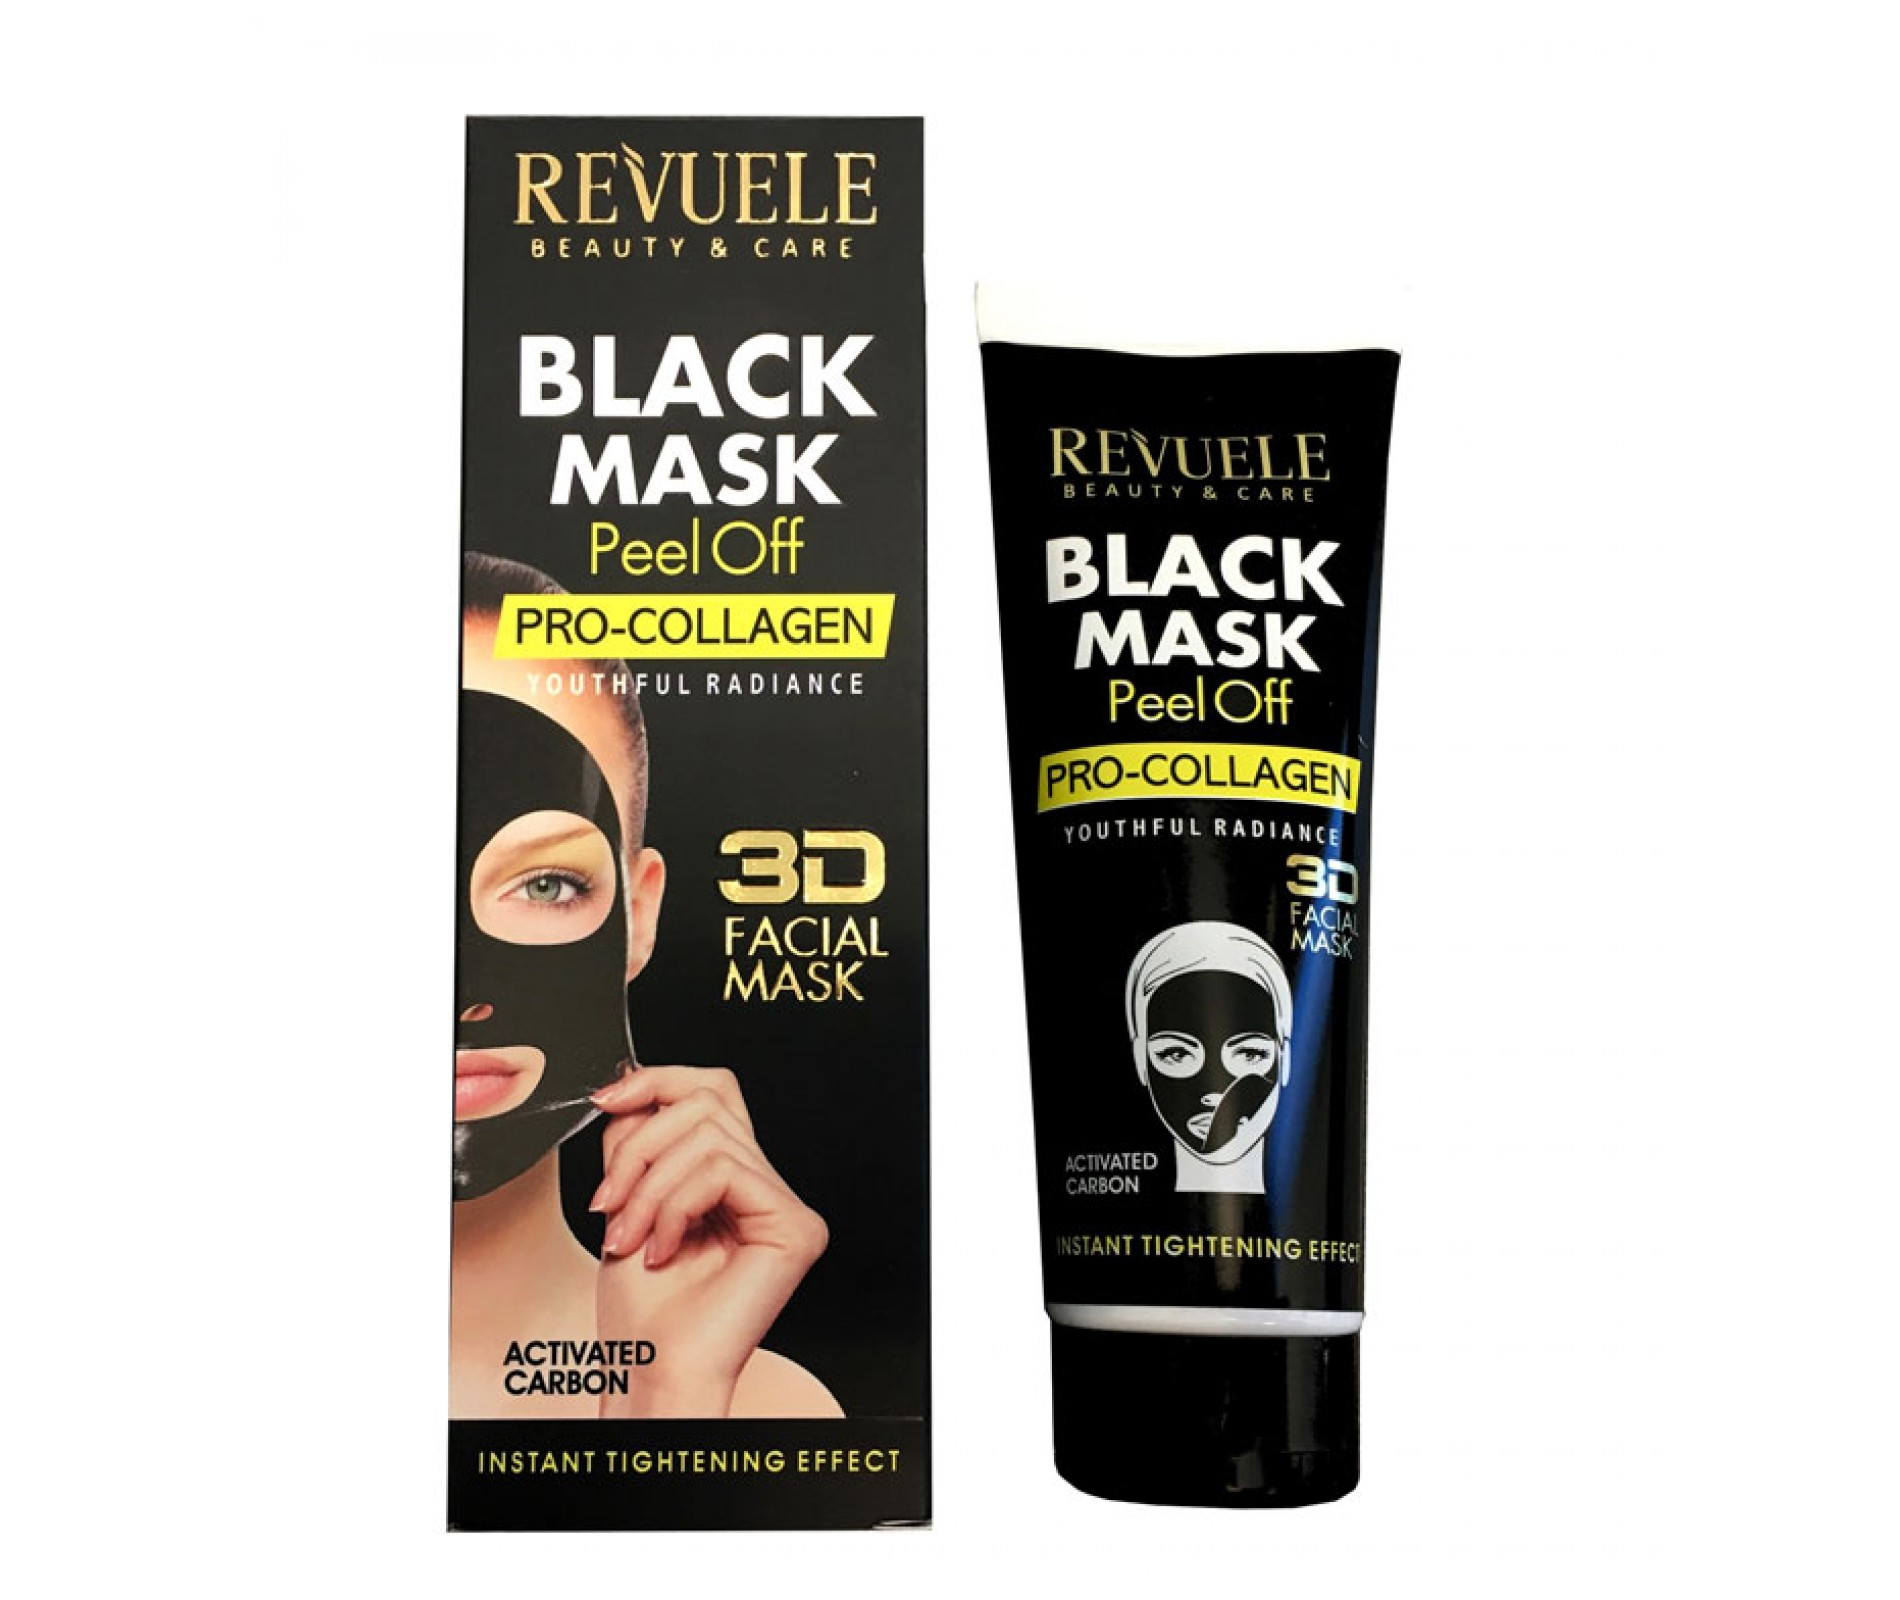 Revuele Black Mask Peel Off Pro-Collagen Tightening 80ml